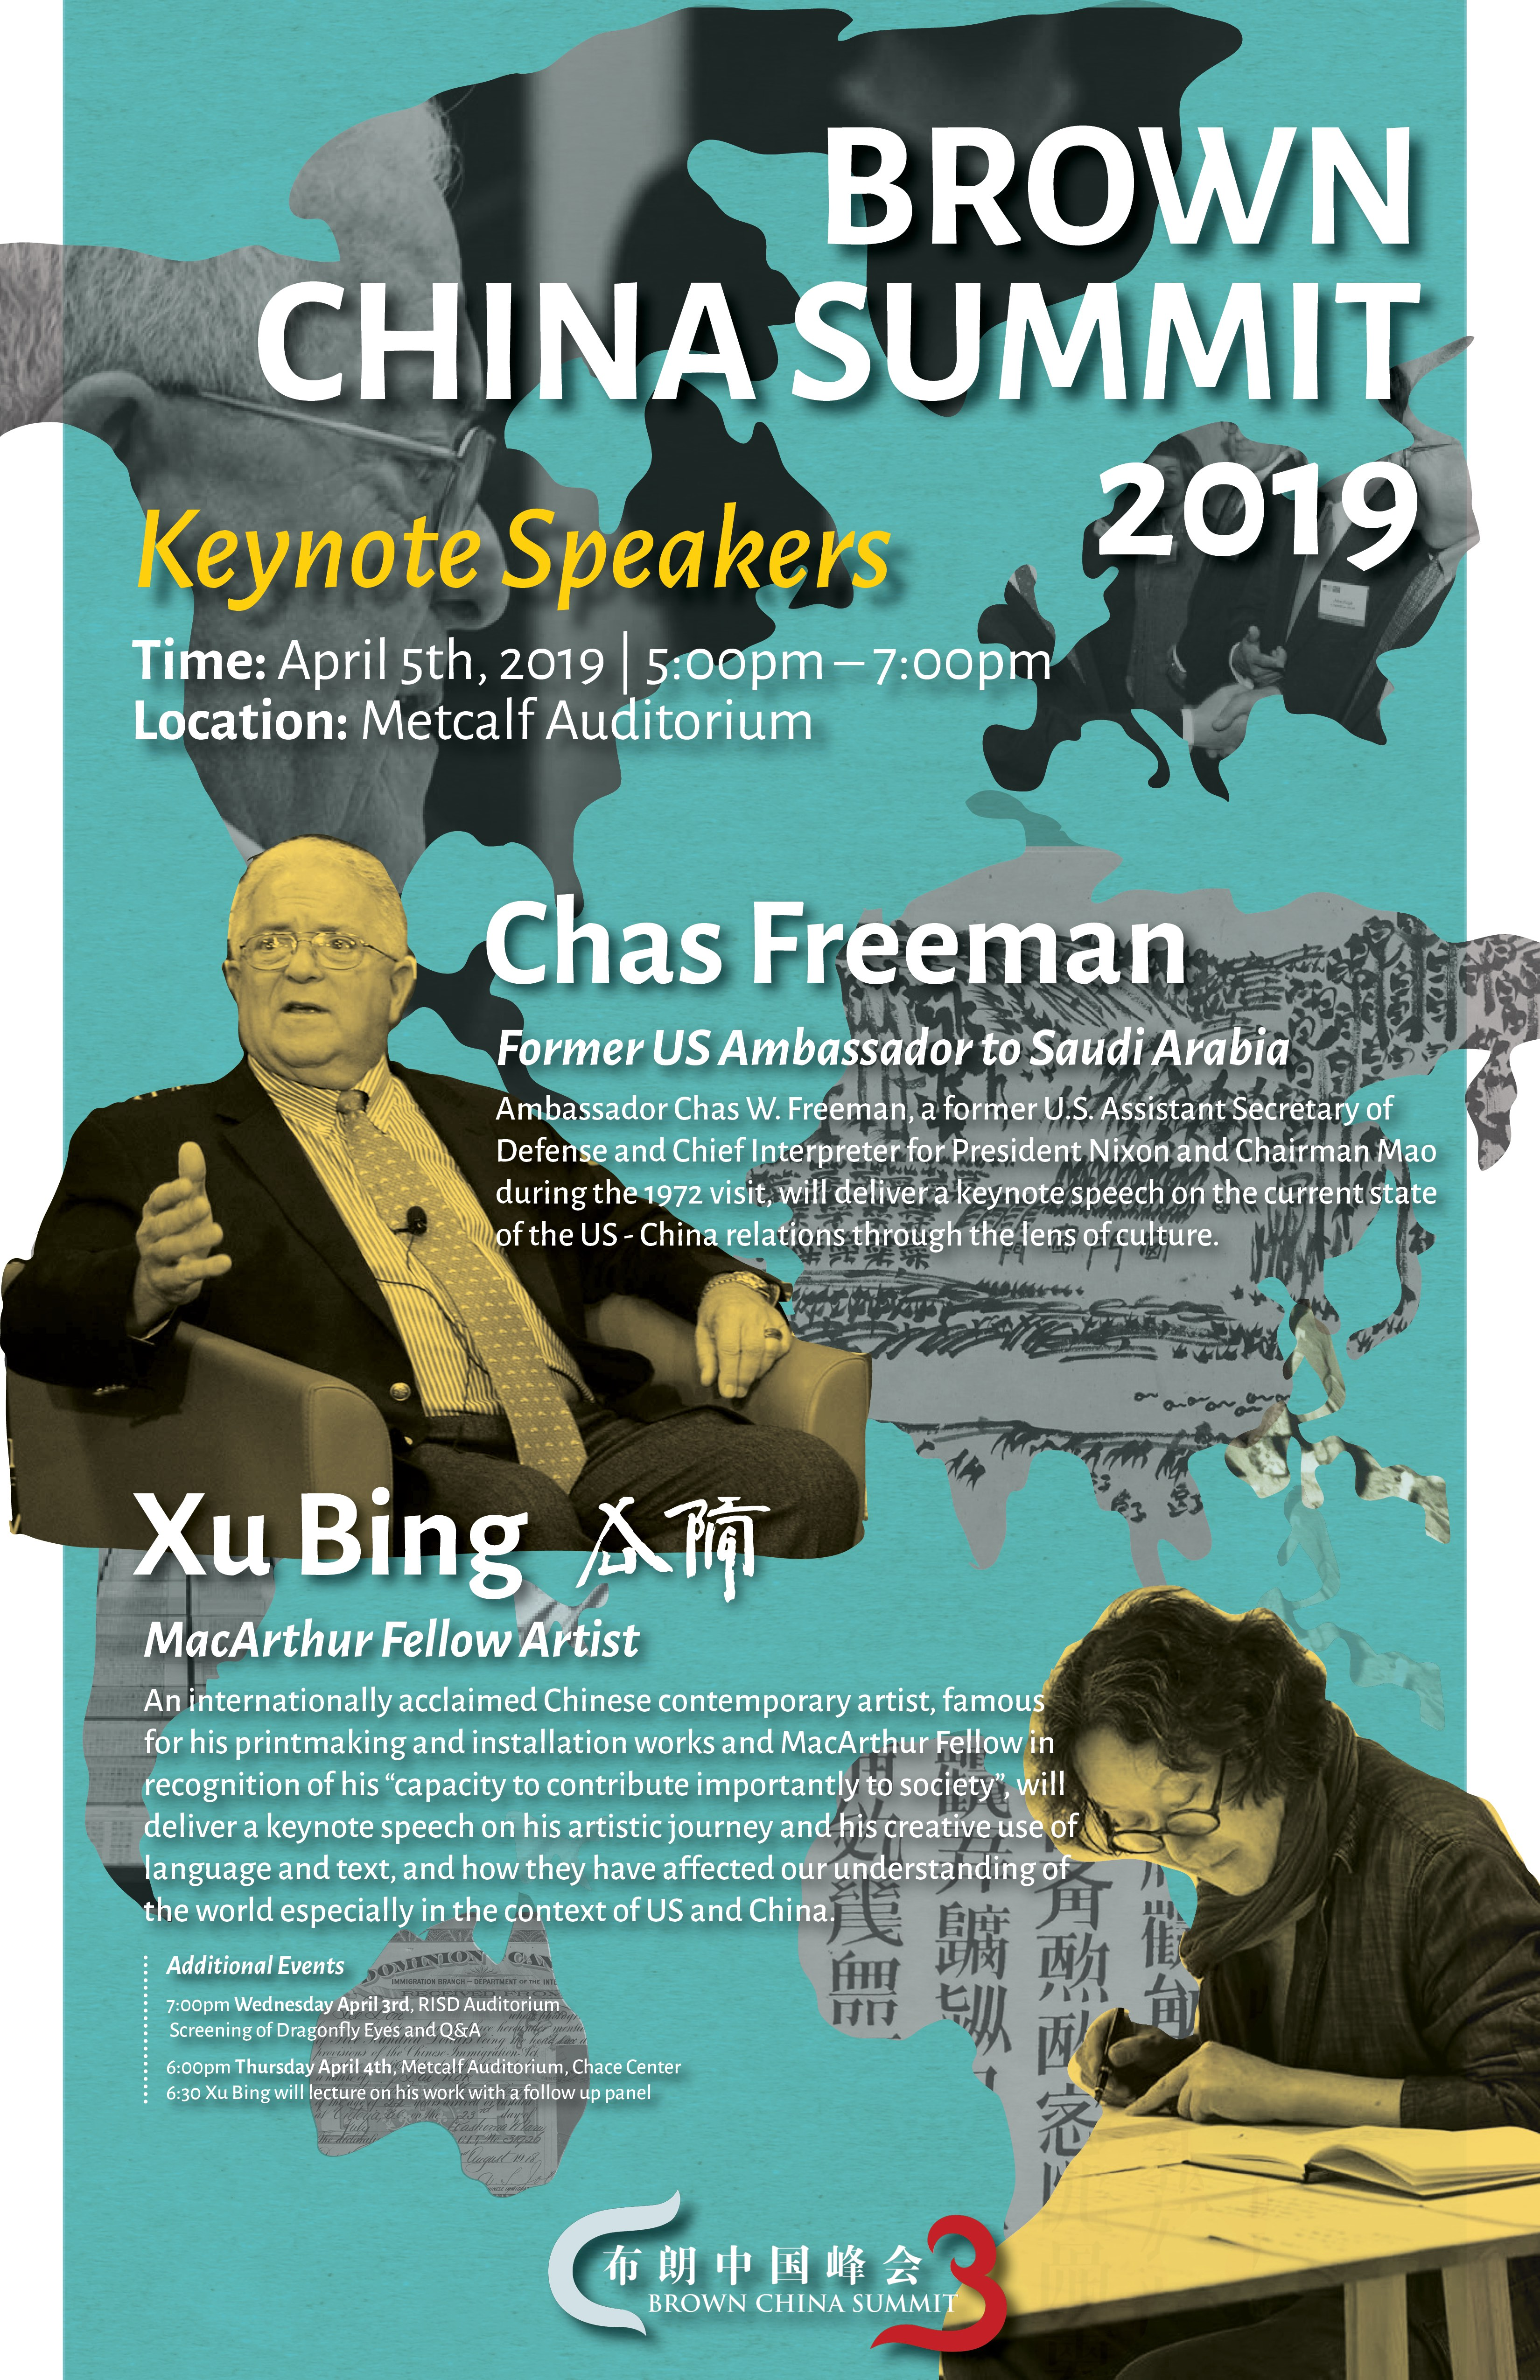 2019 Brown China Summit poster copy 2.jpg